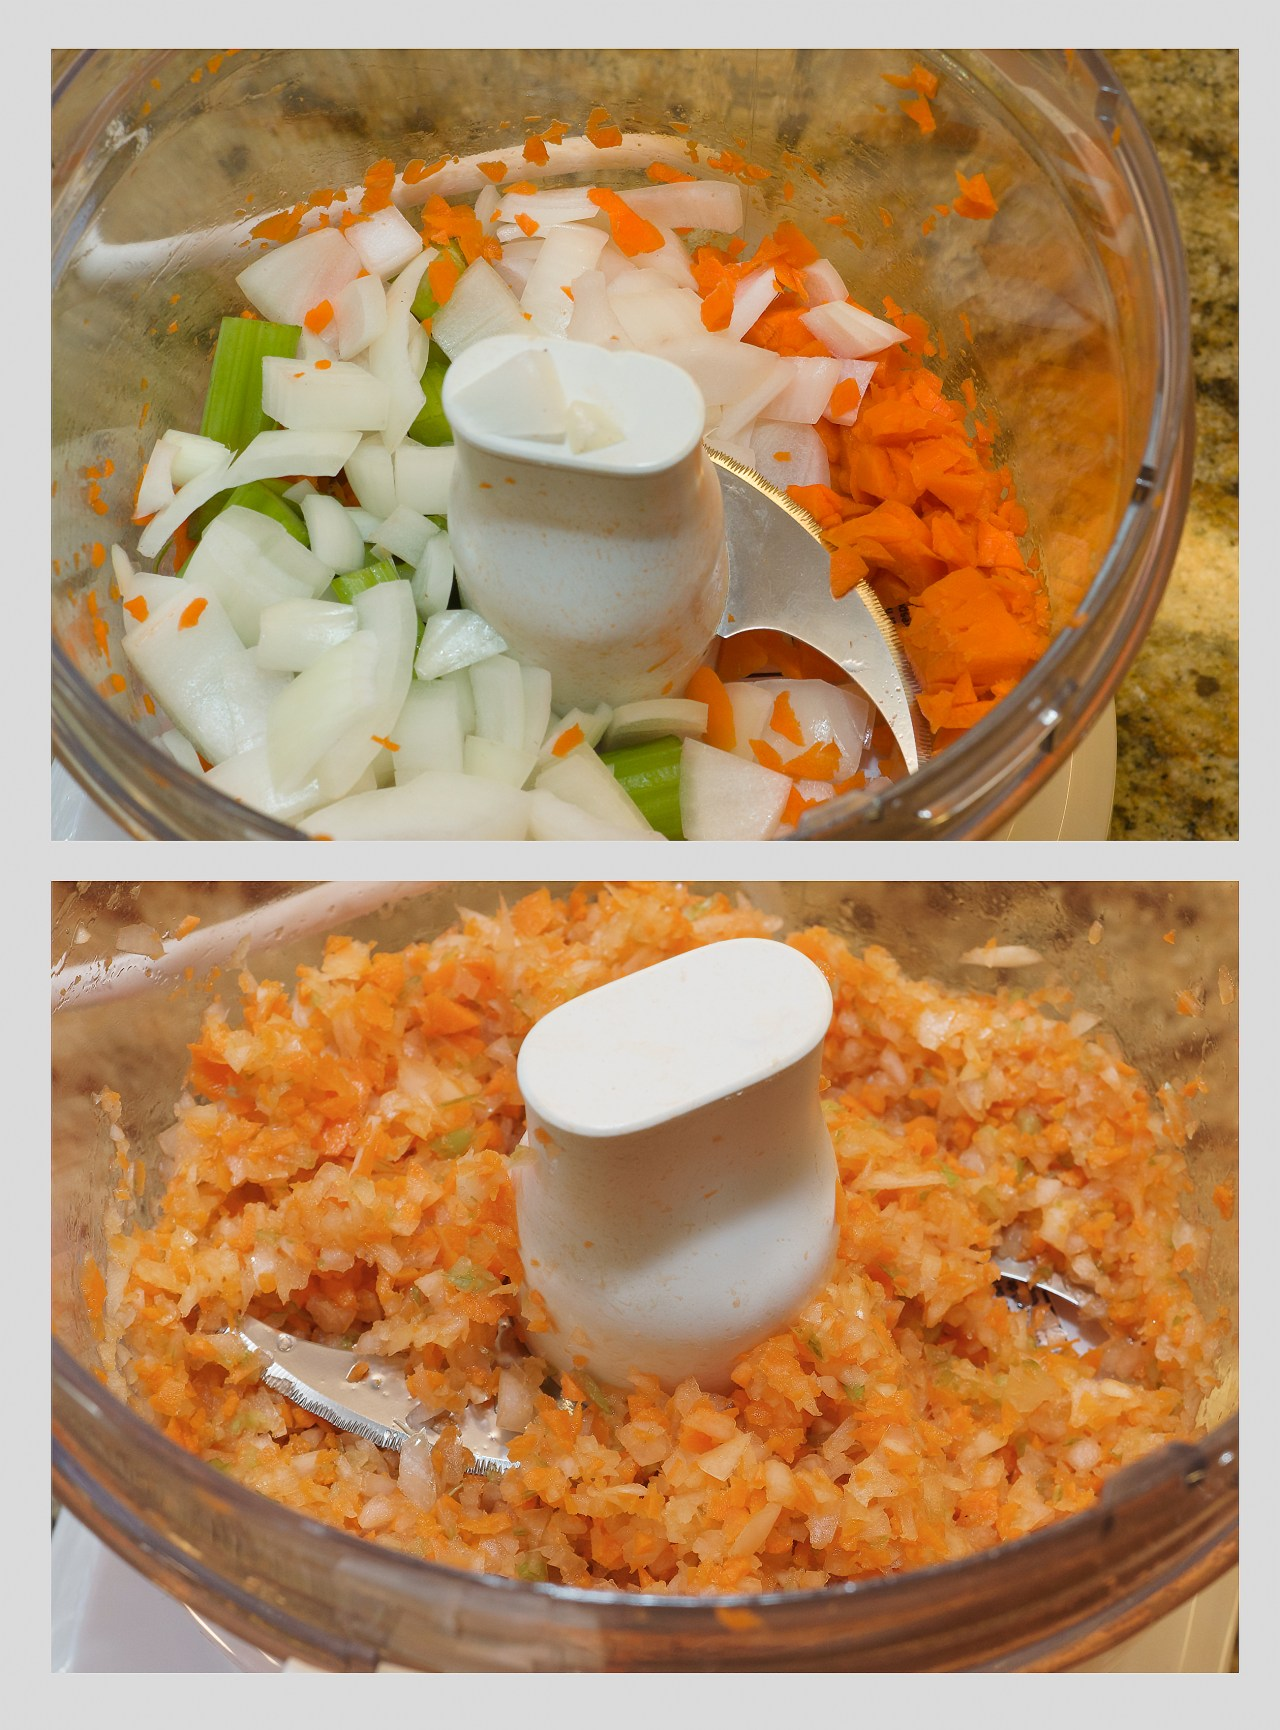 Chopping the mirepoix quickly in the food processor